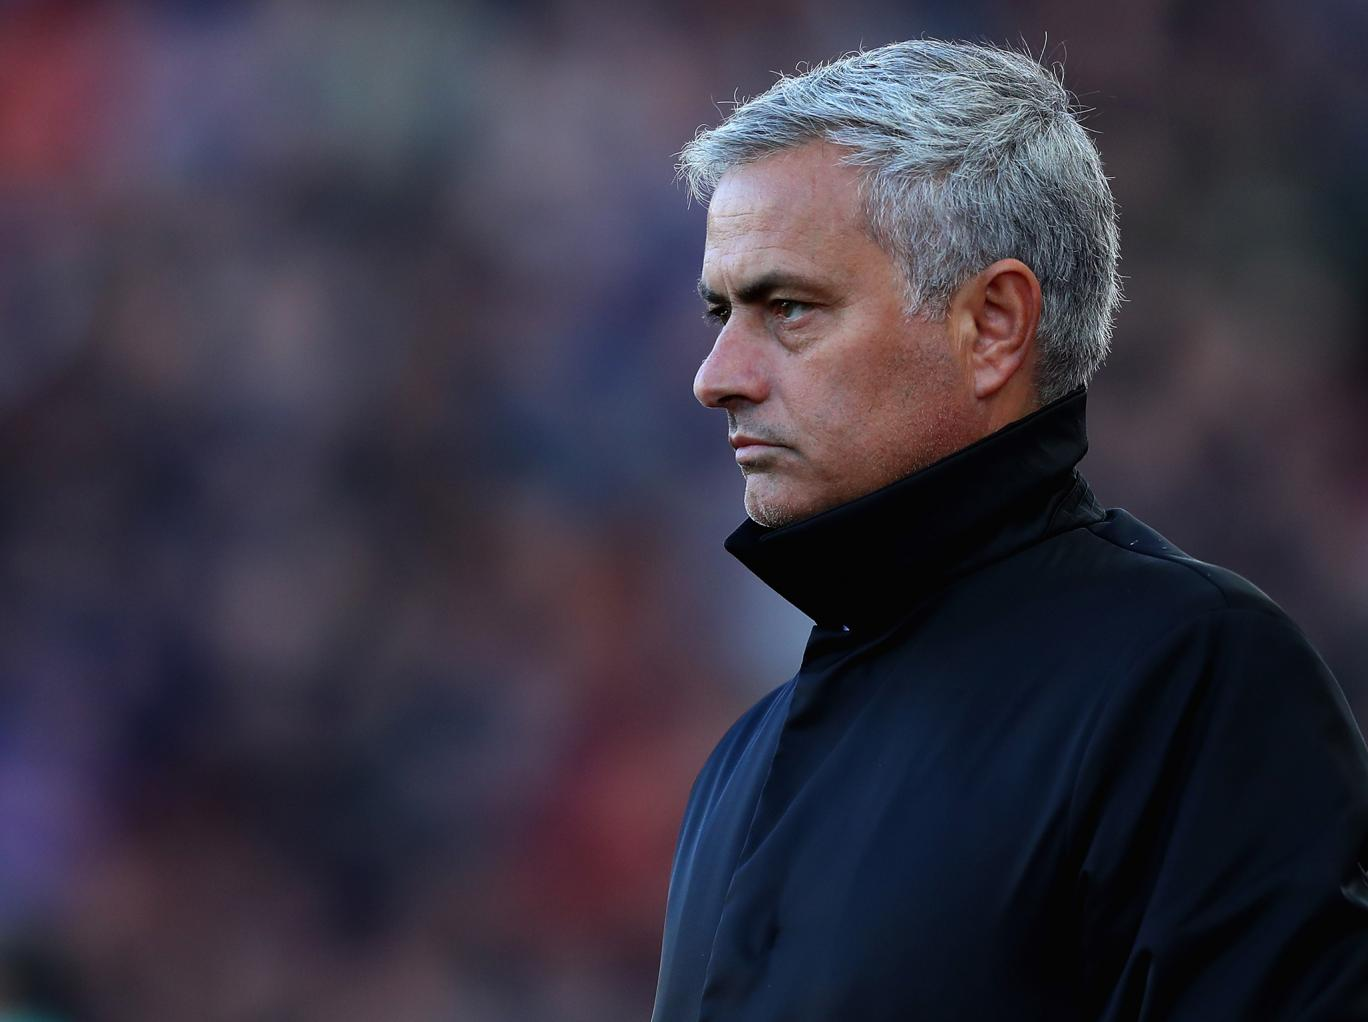 Mourinho: English clubs at a disadvantage in the Champions League